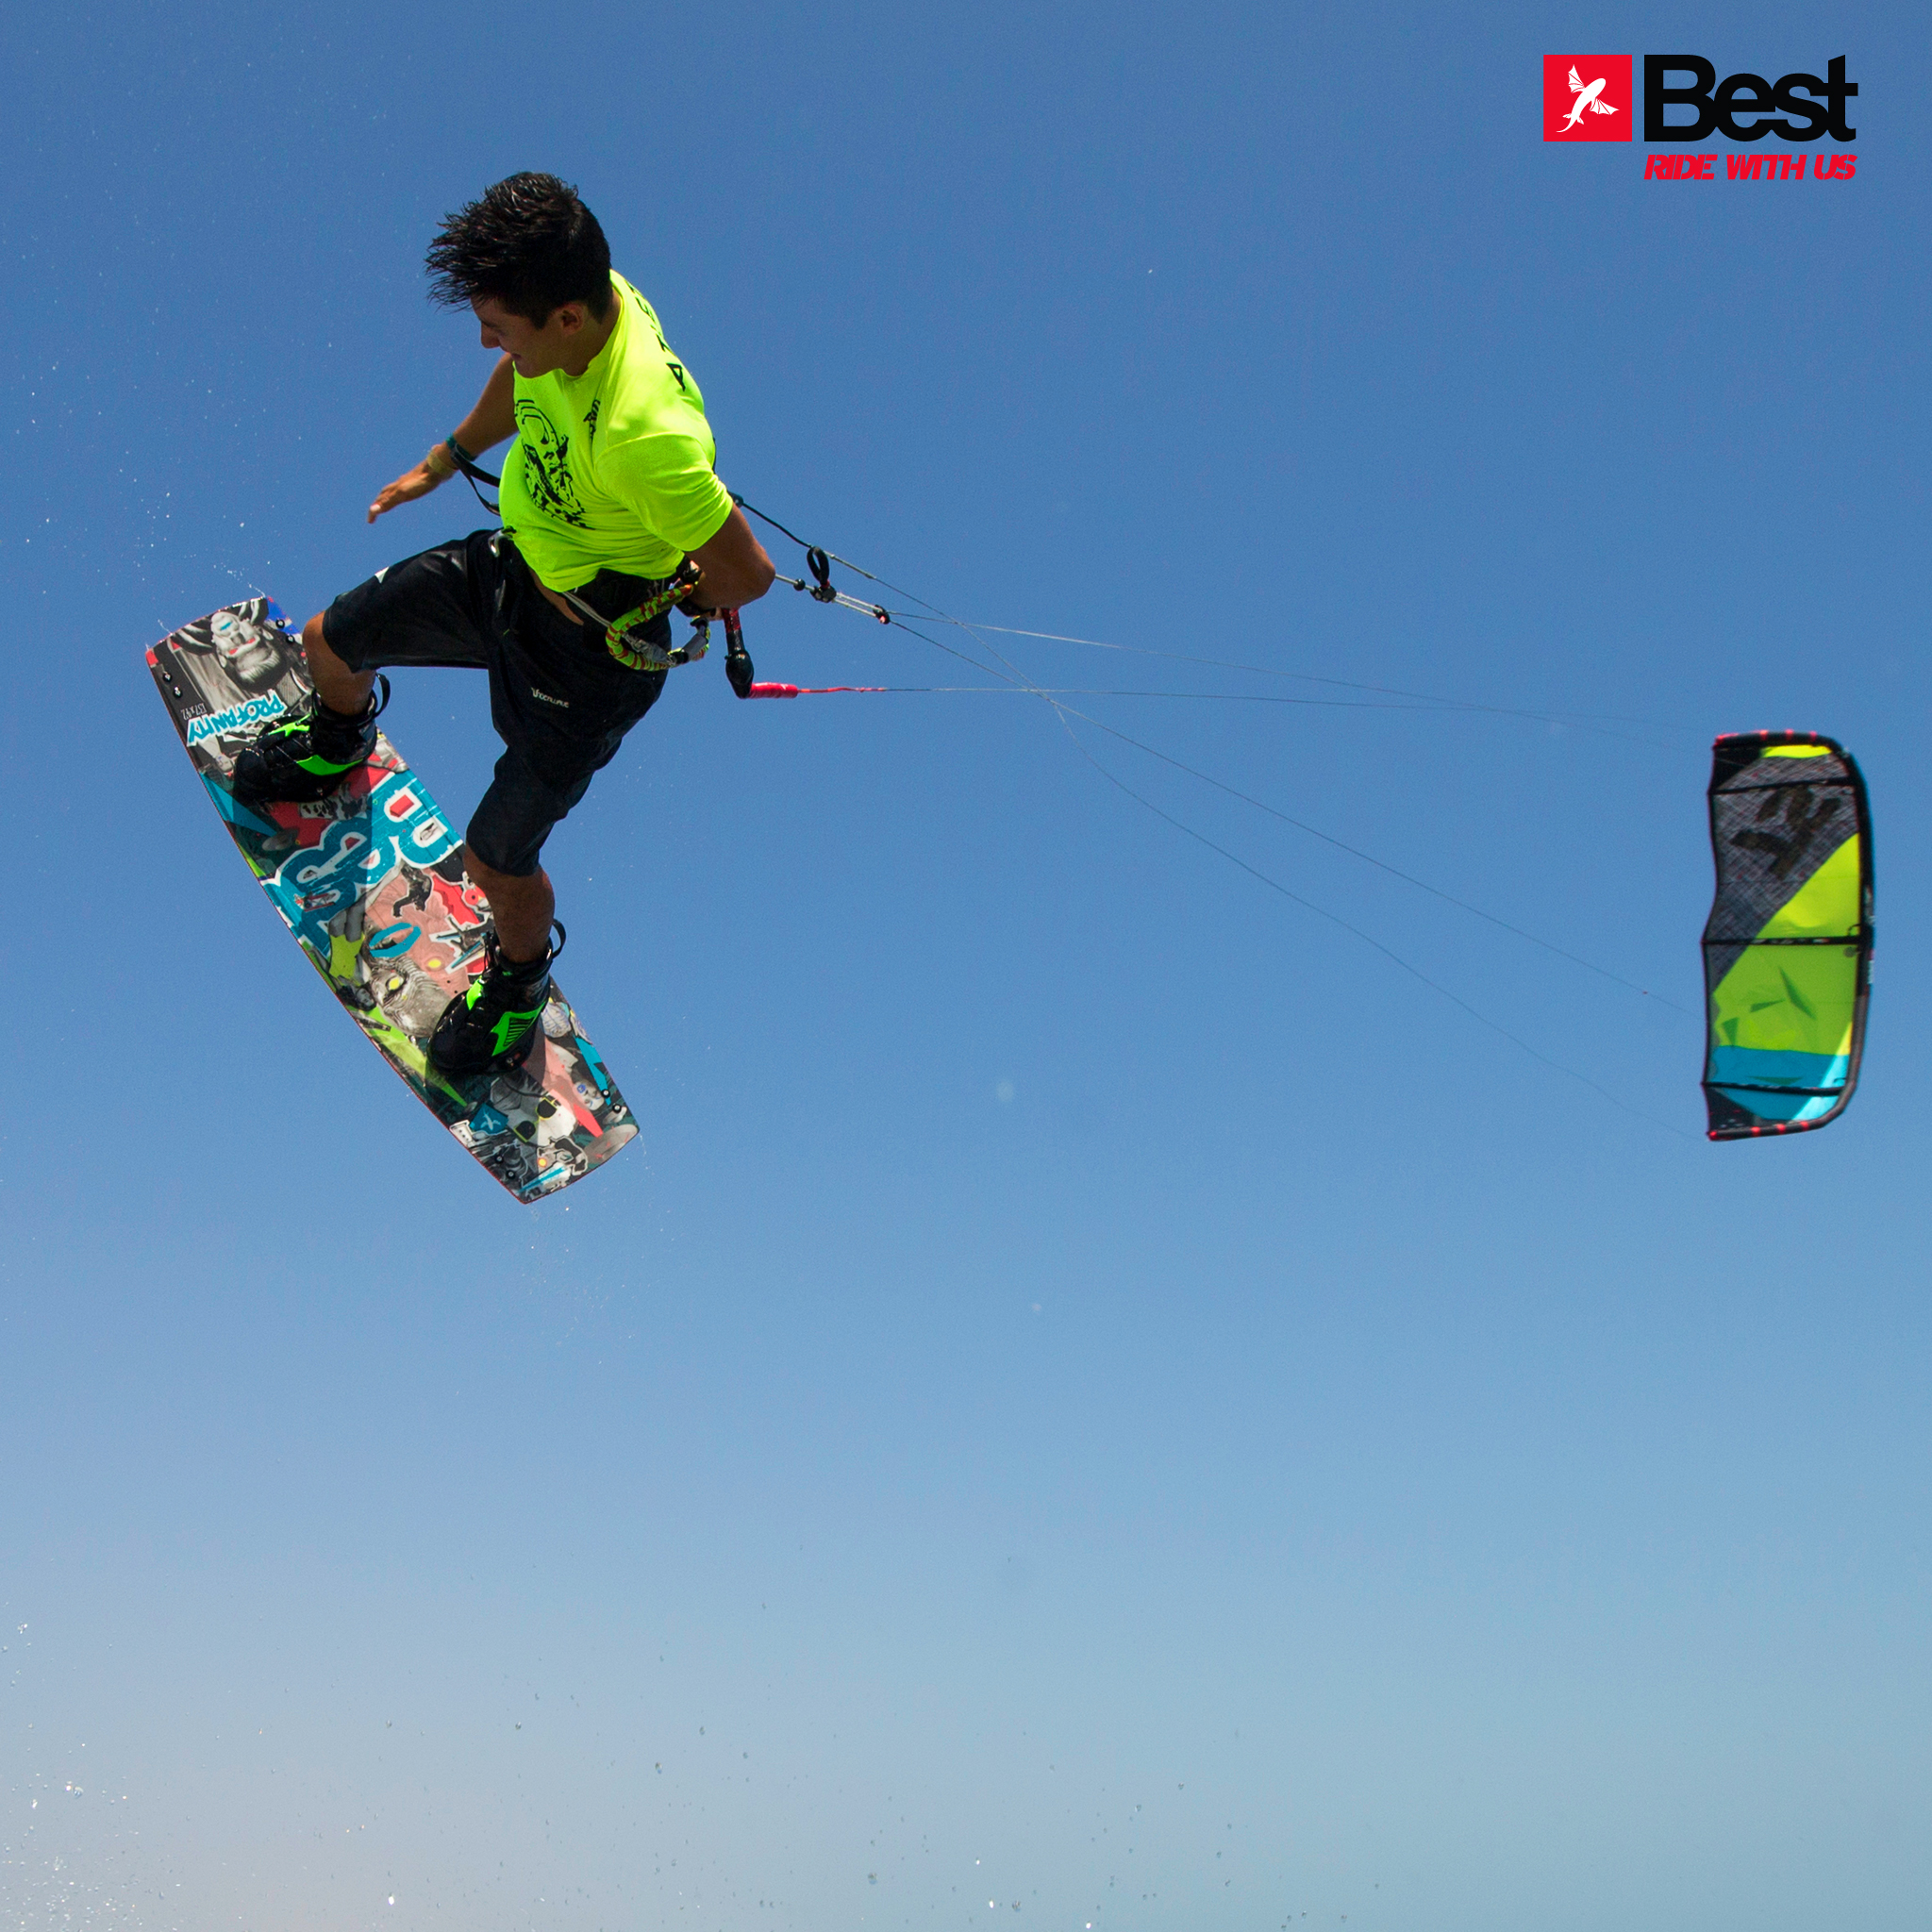 kitesurf wallpaper image - Alexandre Neto with a nice session back home in Brazil on the 2015 Best kiteboarding TS and Profanity board - kitesurfing - in resolution: iPad 2 & 3 2048 X 2048